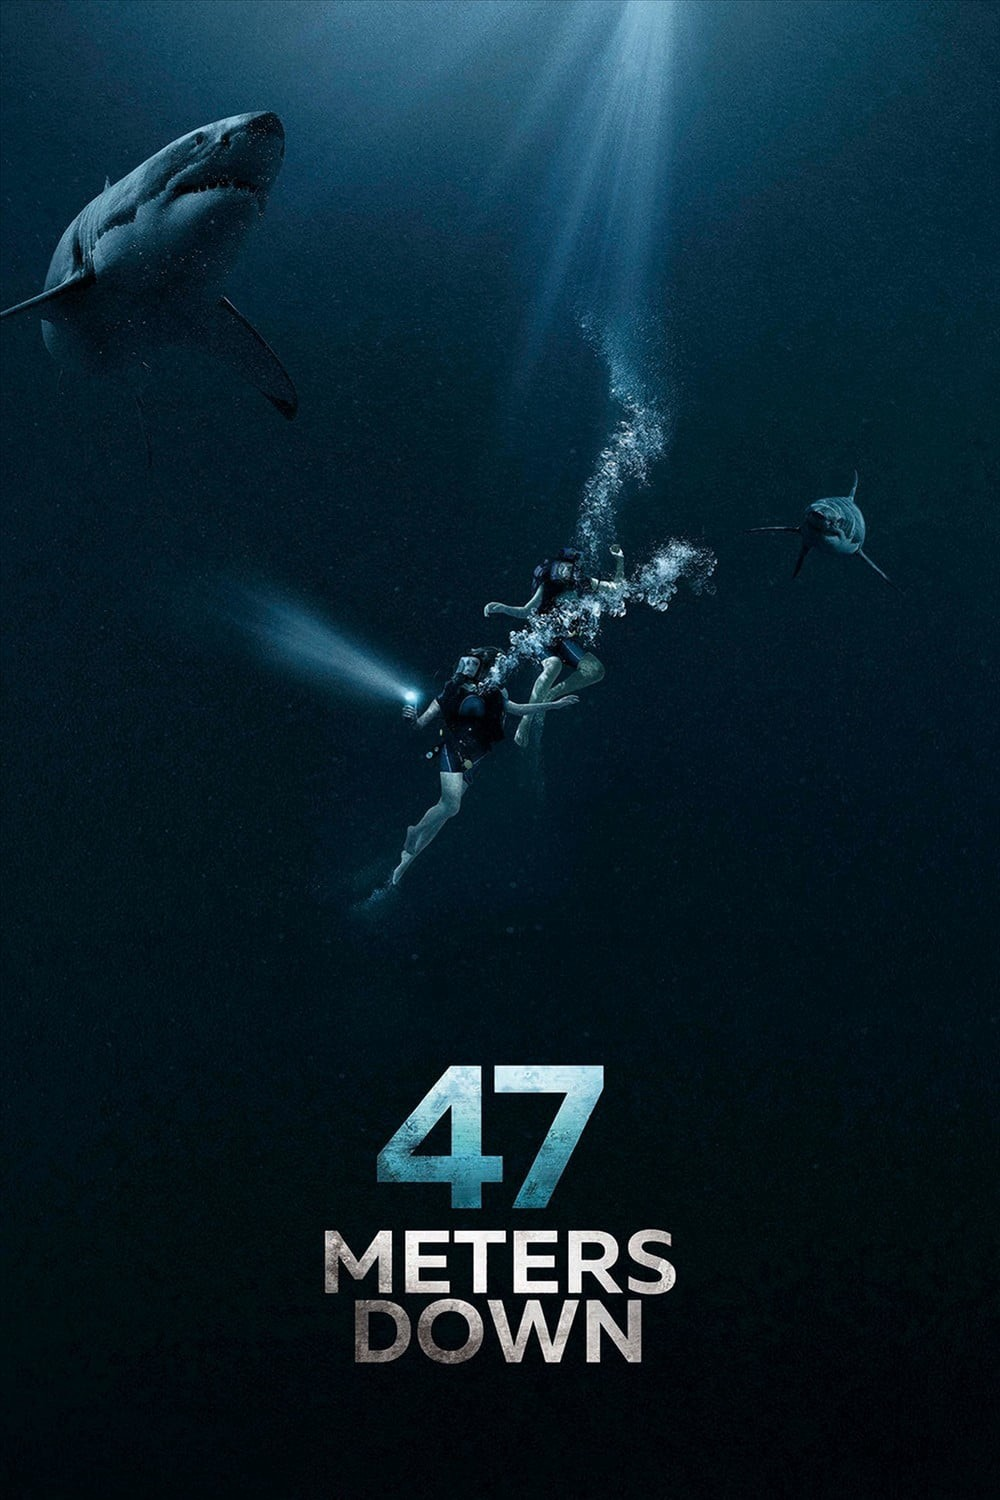 watch 47 meters down online free